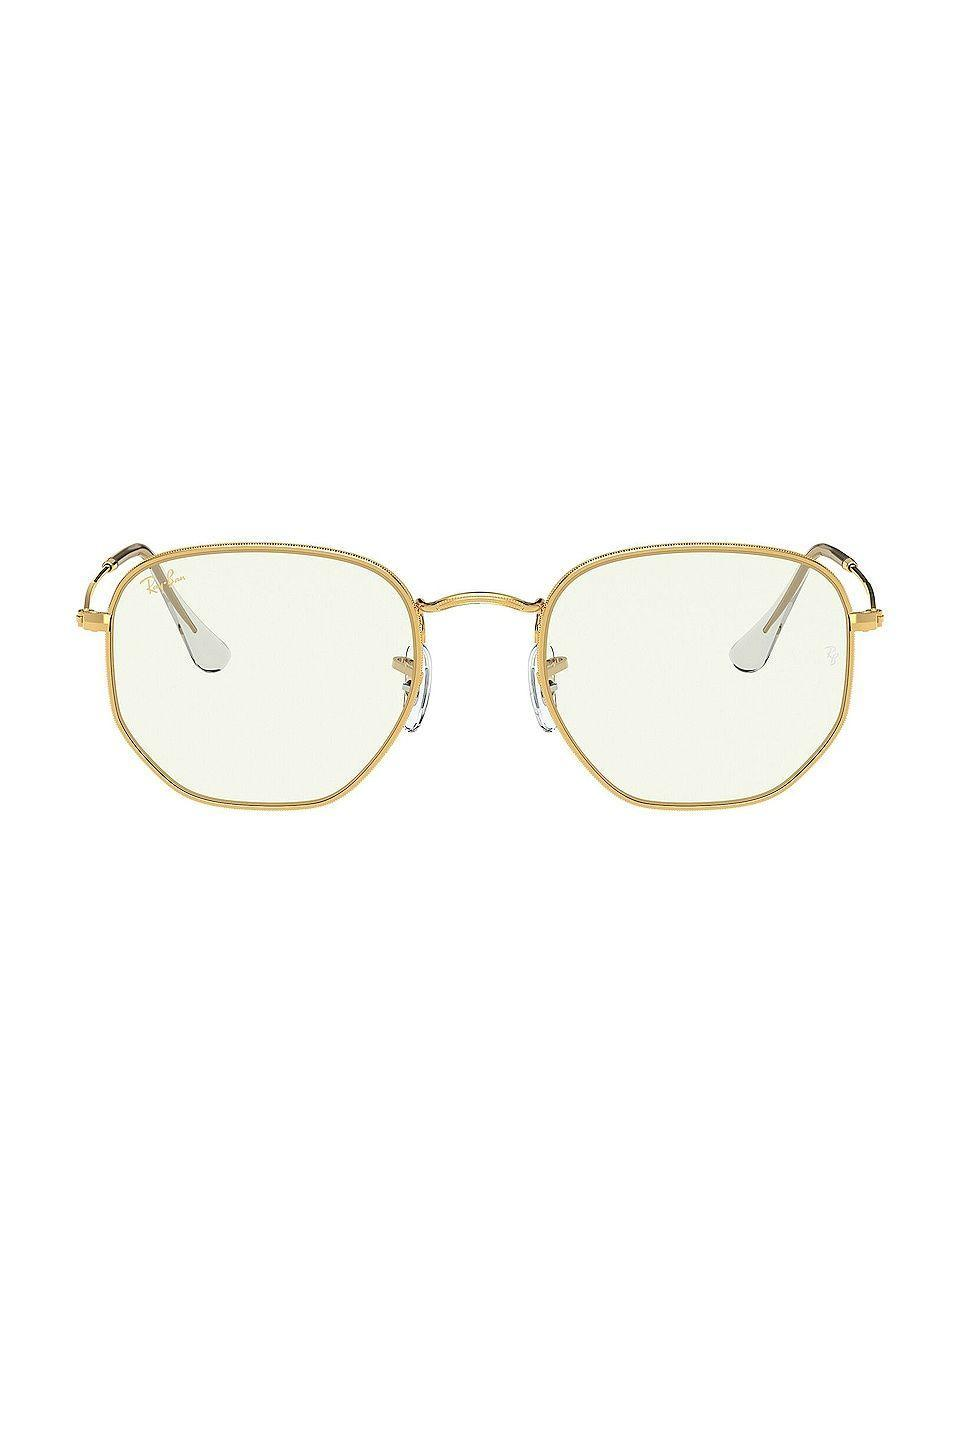 """<p><strong>Ray-Ban</strong></p><p>revolve.com</p><p><strong>$161.00</strong></p><p><a href=""""https://go.redirectingat.com?id=74968X1596630&url=https%3A%2F%2Fwww.revolve.com%2Fdp%2FRAYB-WA109%2F&sref=https%3A%2F%2Fwww.cosmopolitan.com%2Flifestyle%2Fg36755835%2Fbest-gifts-for-gamers%2F"""" rel=""""nofollow noopener"""" target=""""_blank"""" data-ylk=""""slk:Shop Now"""" class=""""link rapid-noclick-resp"""">Shop Now</a></p><p>I'm just sayin'... they're gonna need to protect those precious eyeballs from fatigue if they're spending allllll that time staring at a screen!</p>"""